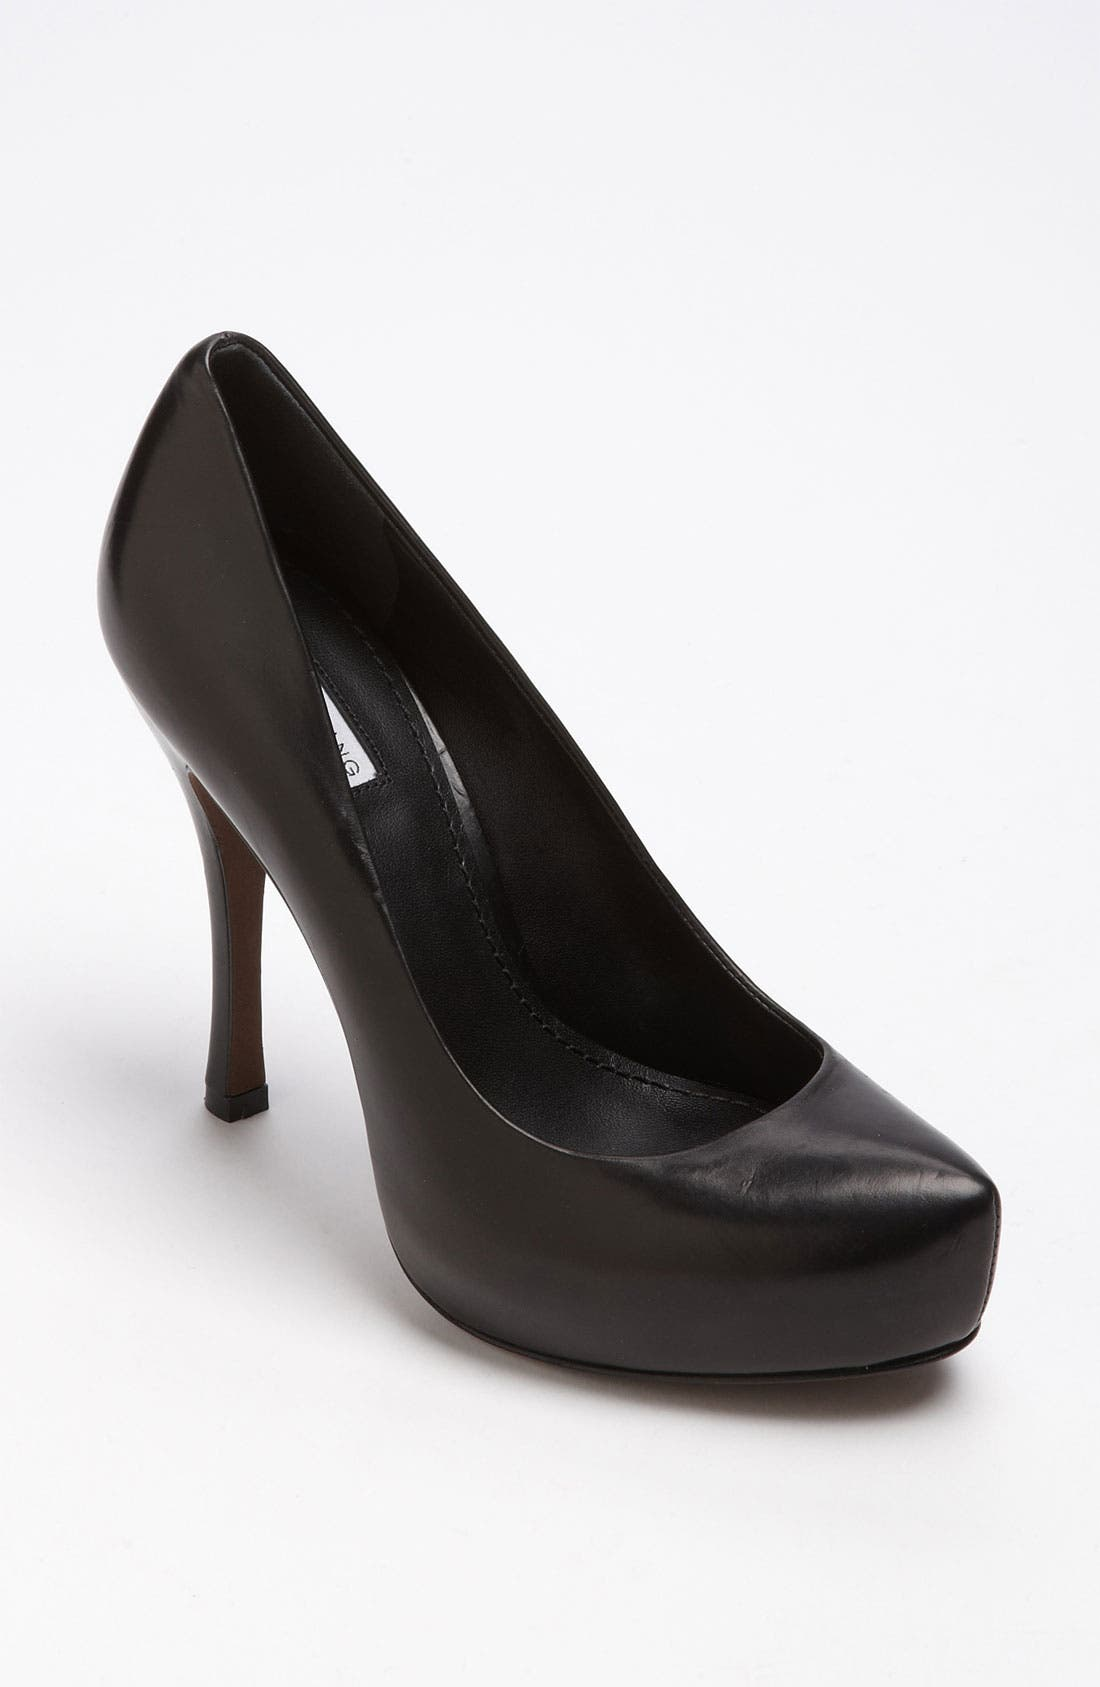 Alternate Image 1 Selected - Vera Wang Footwear 'Raquel' Pump